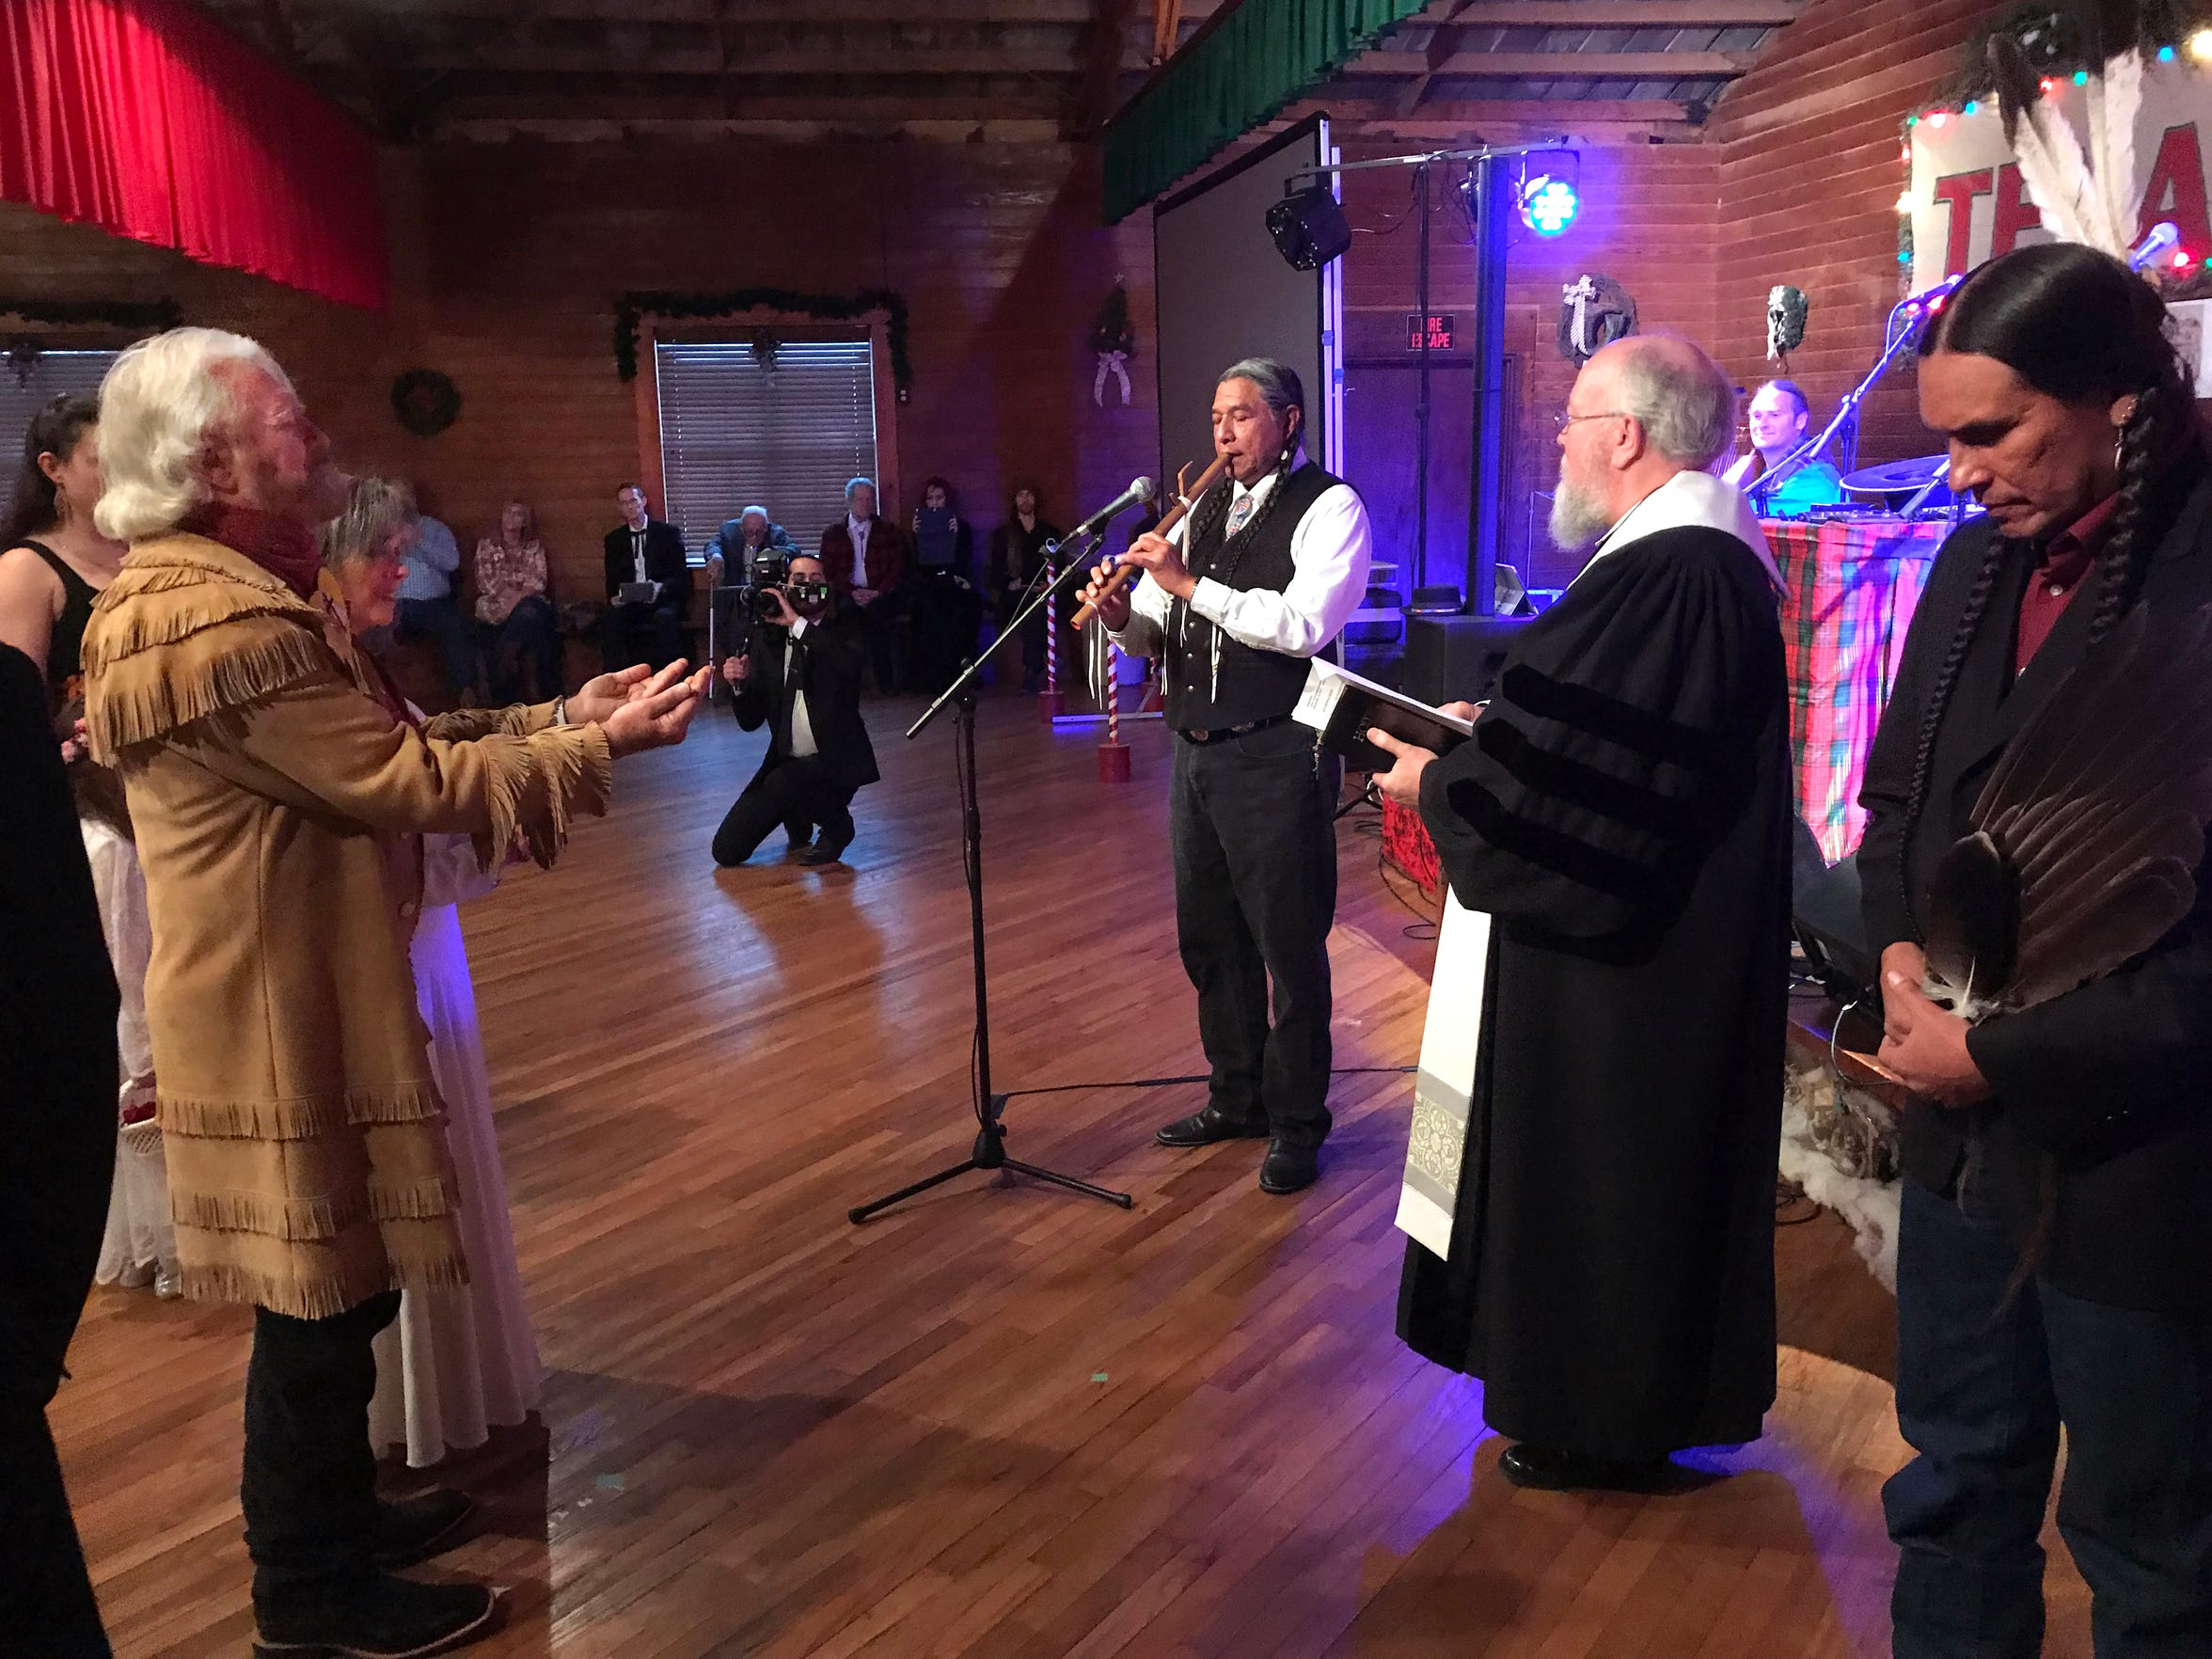 Hands out, Michael Martin Murphey and, at his side, Cynthia Tune, accept the spirit flowing from the flute music of Terry Tsotigh. Co-officiants Dale Schultz and Moses Brings Plenty listen.